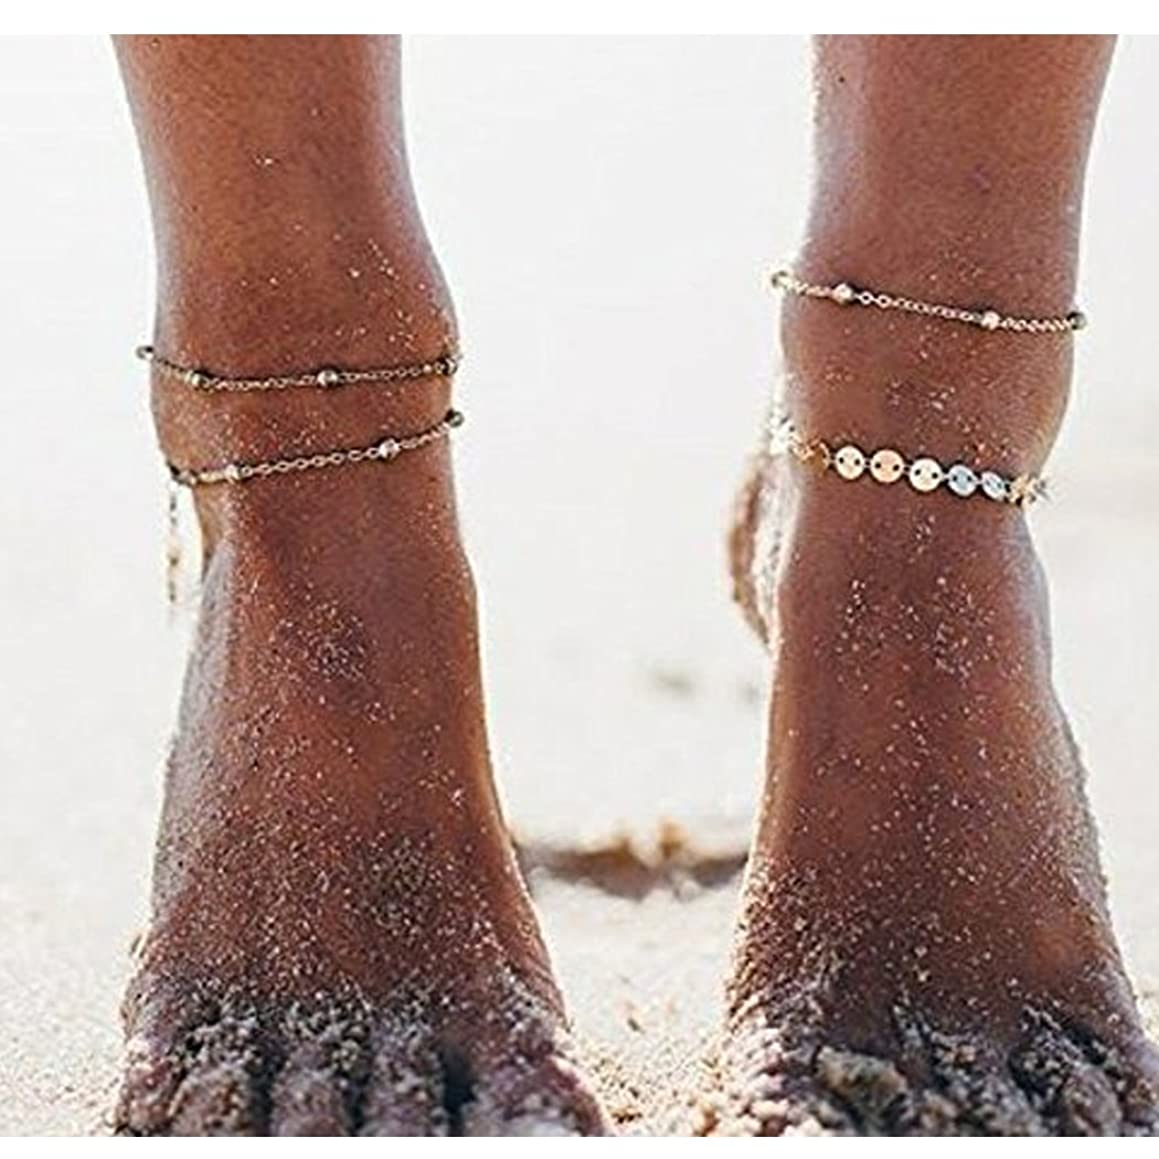 Simsly Anklet Bracelet with Sequins Foot Jewelry Set Beach Ankle Chain for Women and Girls JL-134 (Gold)